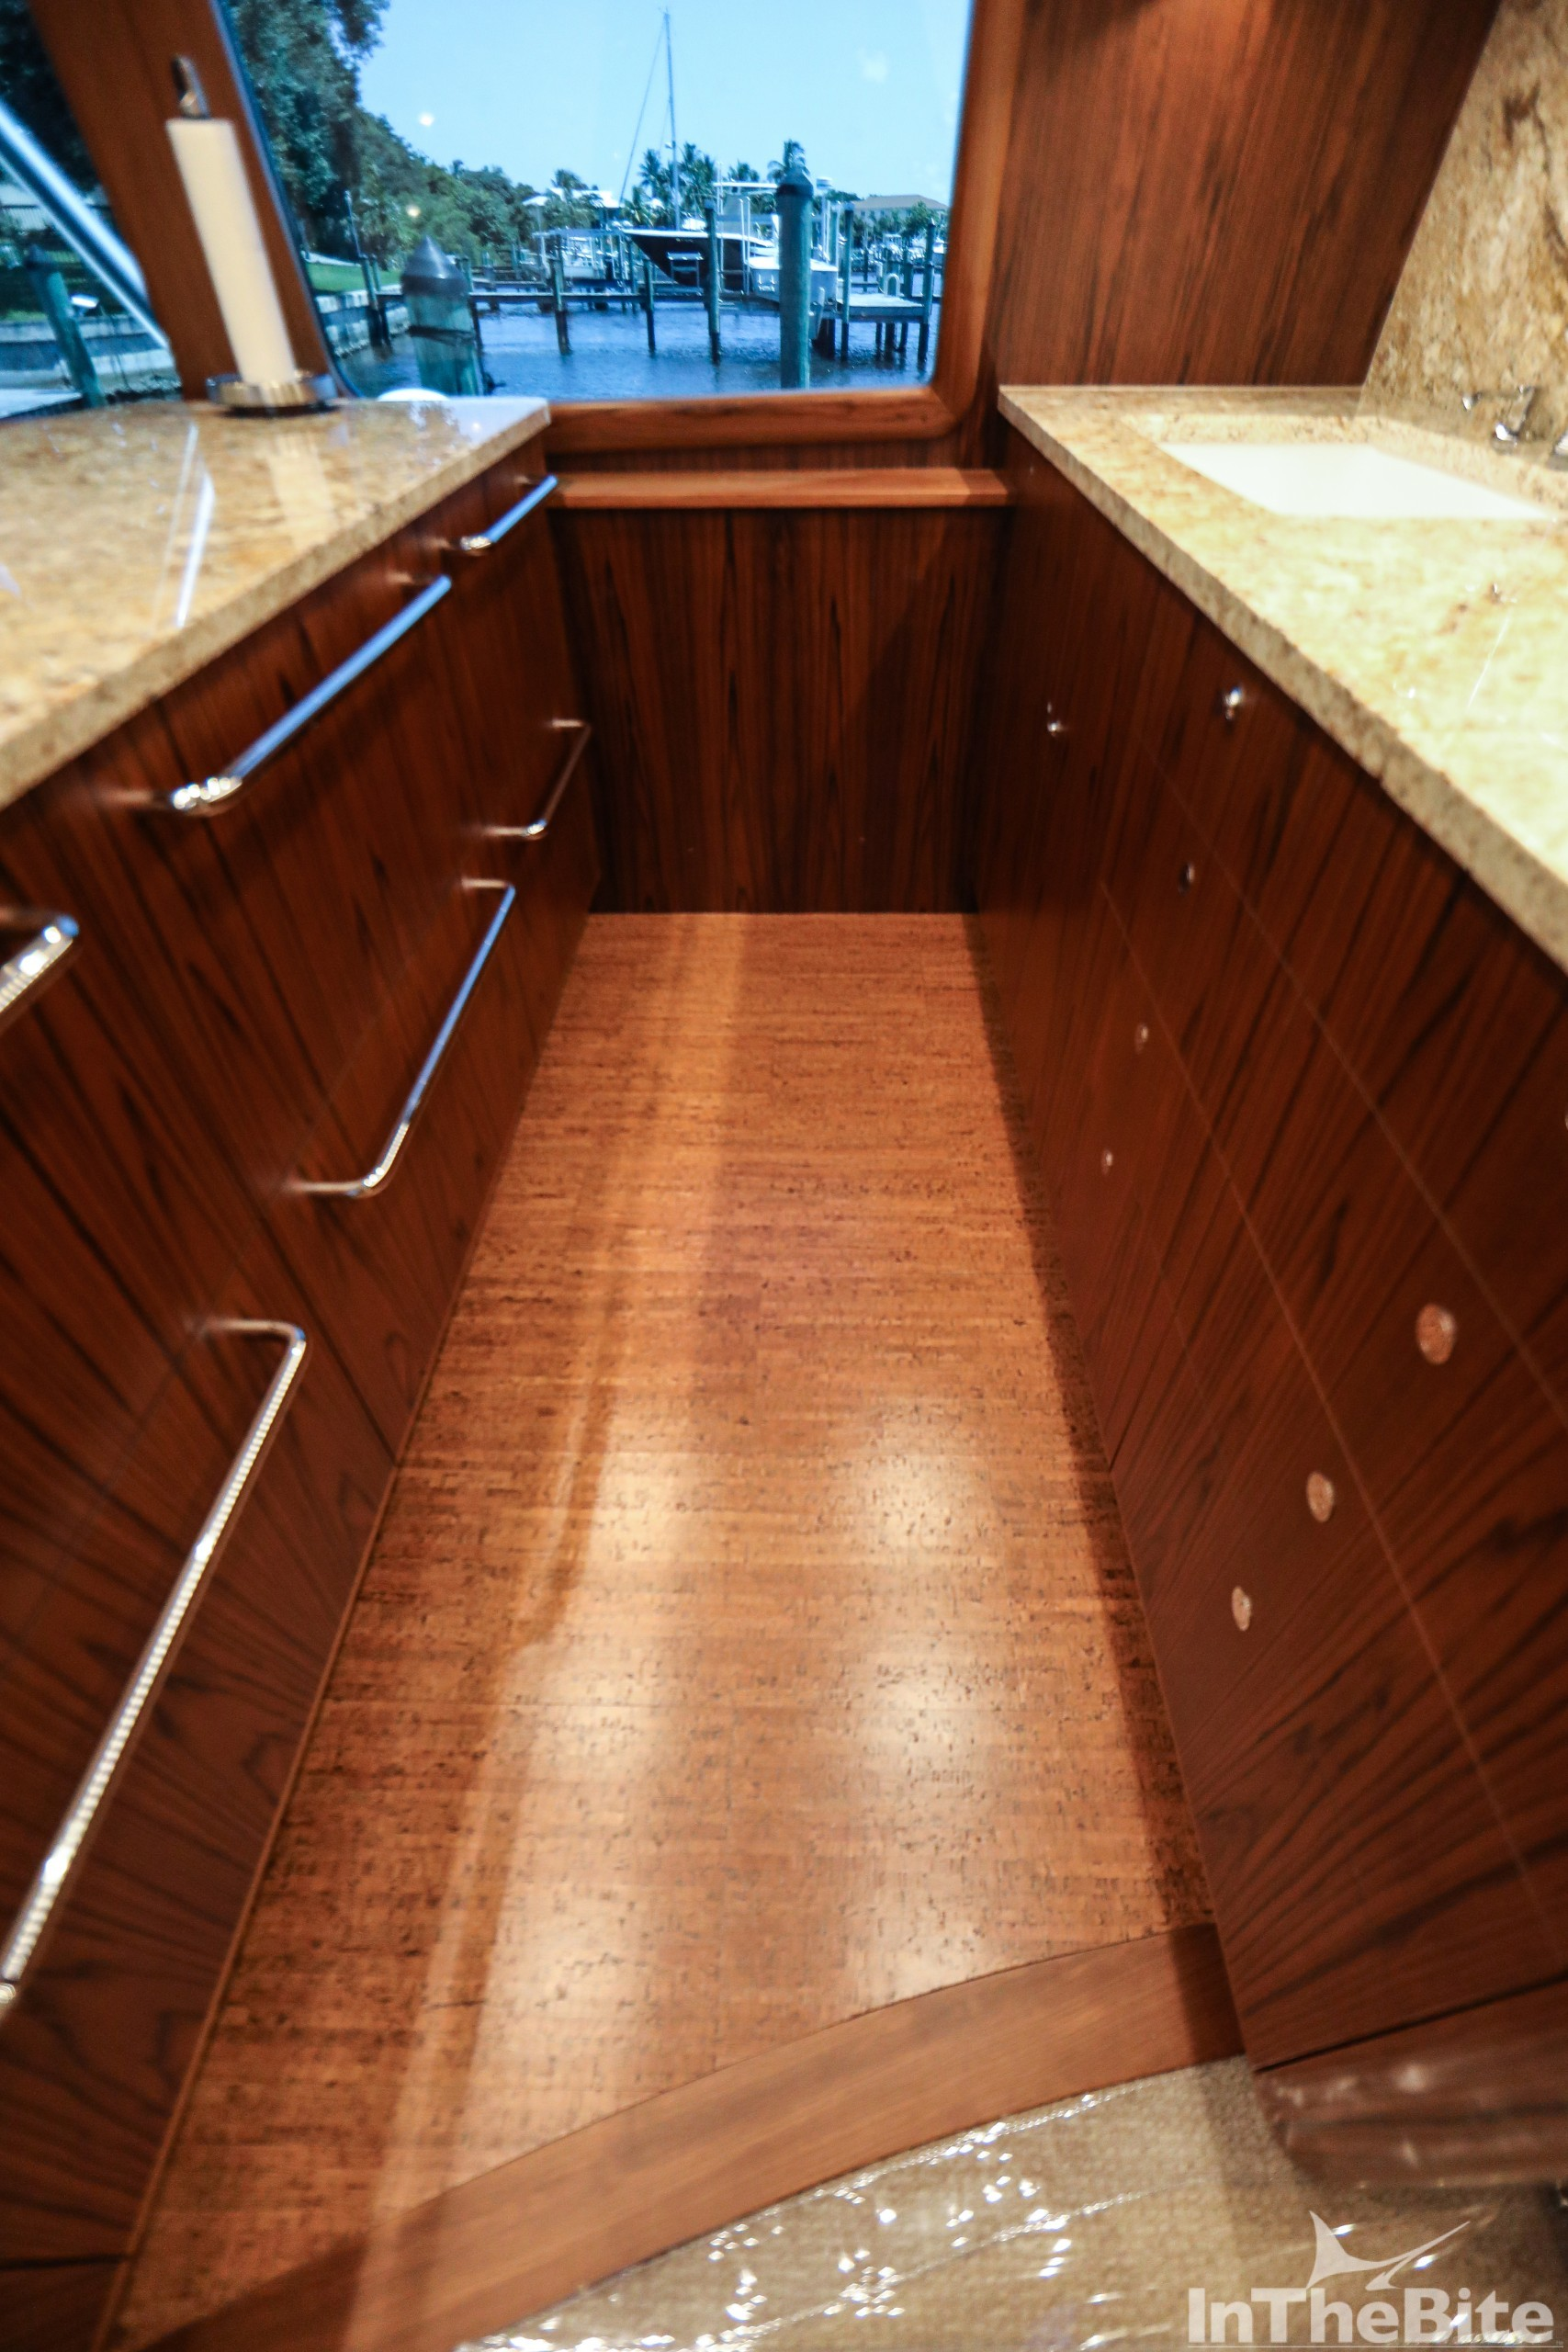 Galley floor of the 72 bayliss